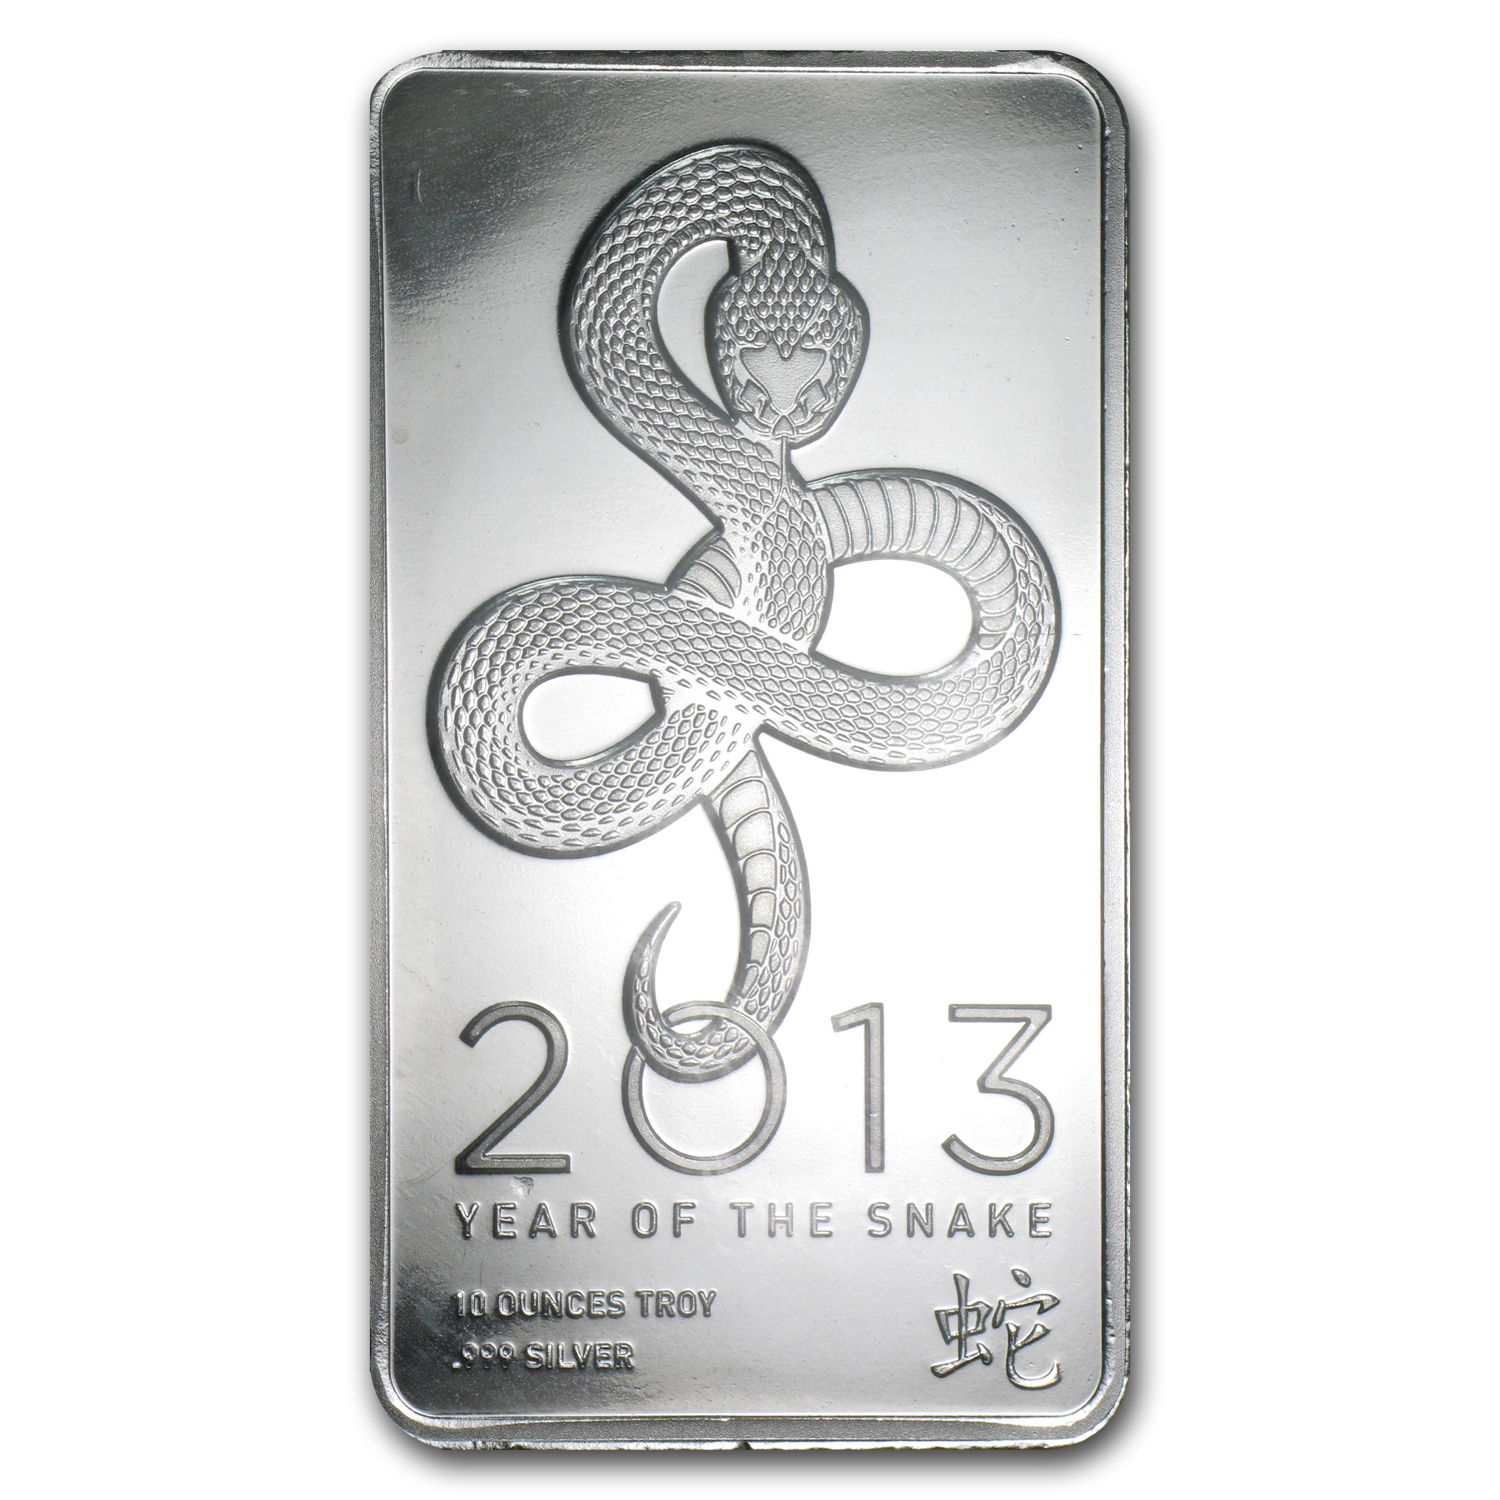 10 oz Silver Bar - 2013 Year of the Snake